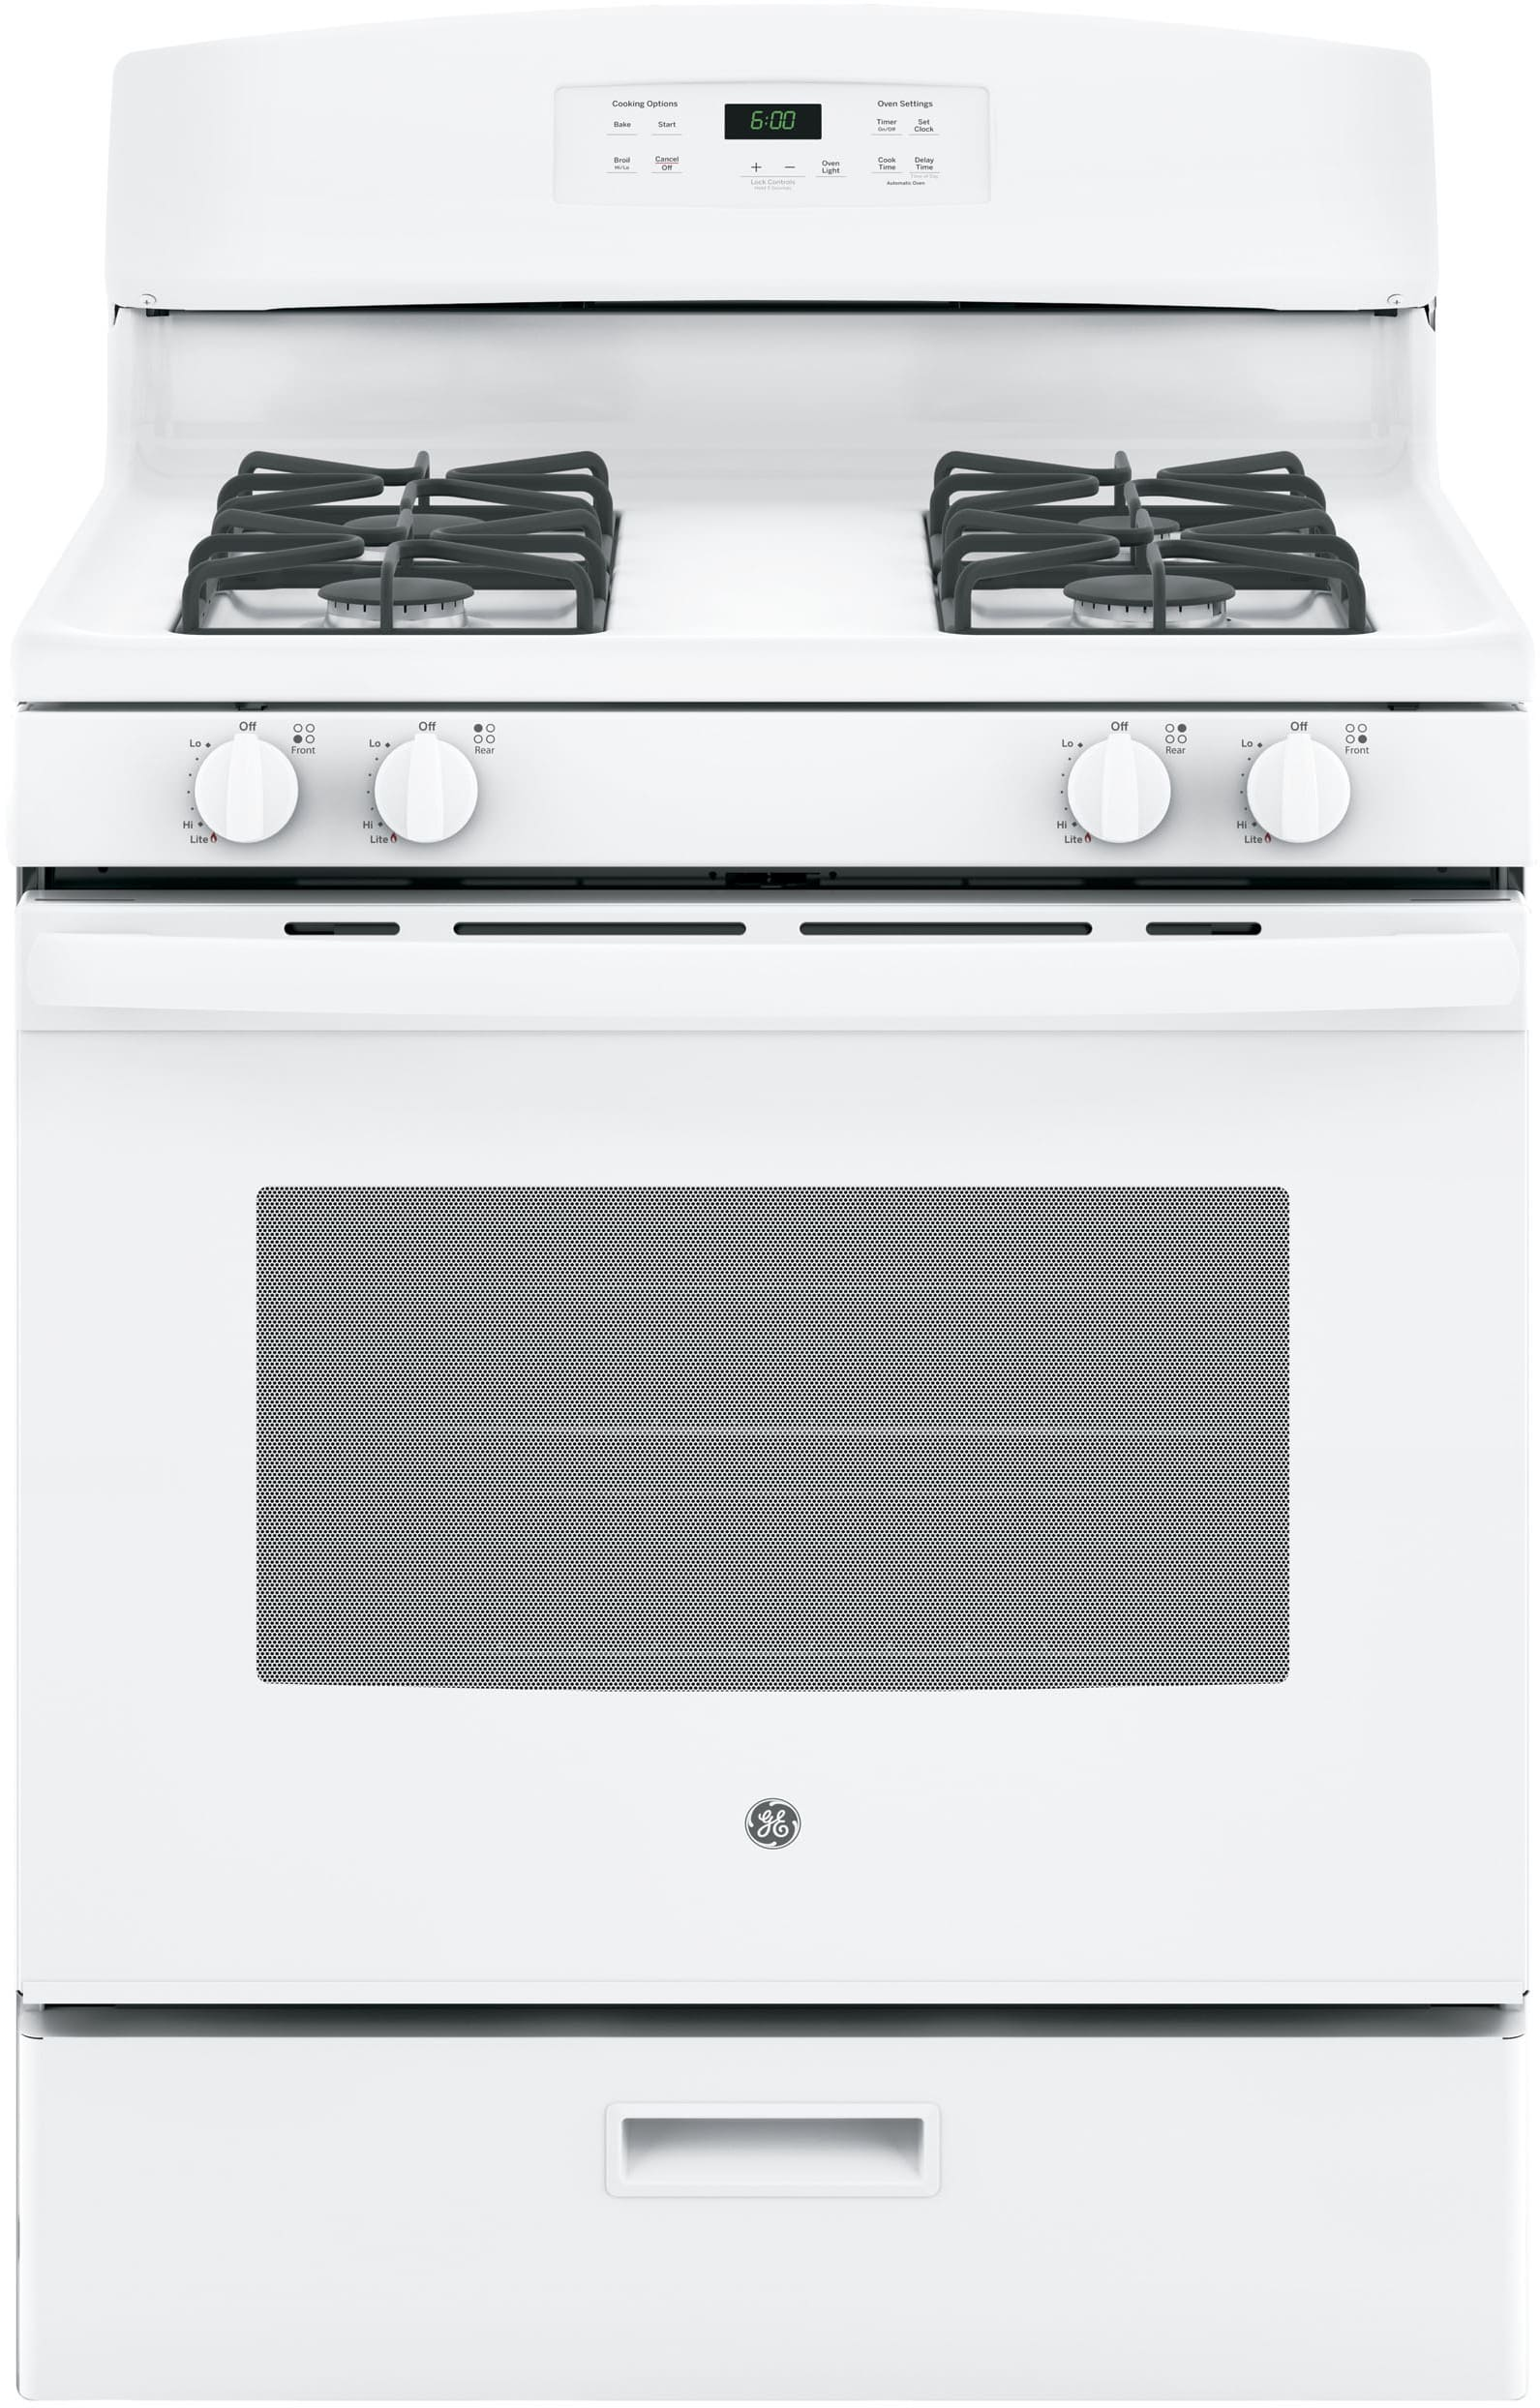 Ge Jgbs60dekww 30 Inch Freestanding Gas Range With Precise Simmer Hi Cook Burner Power Broiler Drawer 48 Cu Ft Capacity 4 Sealed Burners And Star K